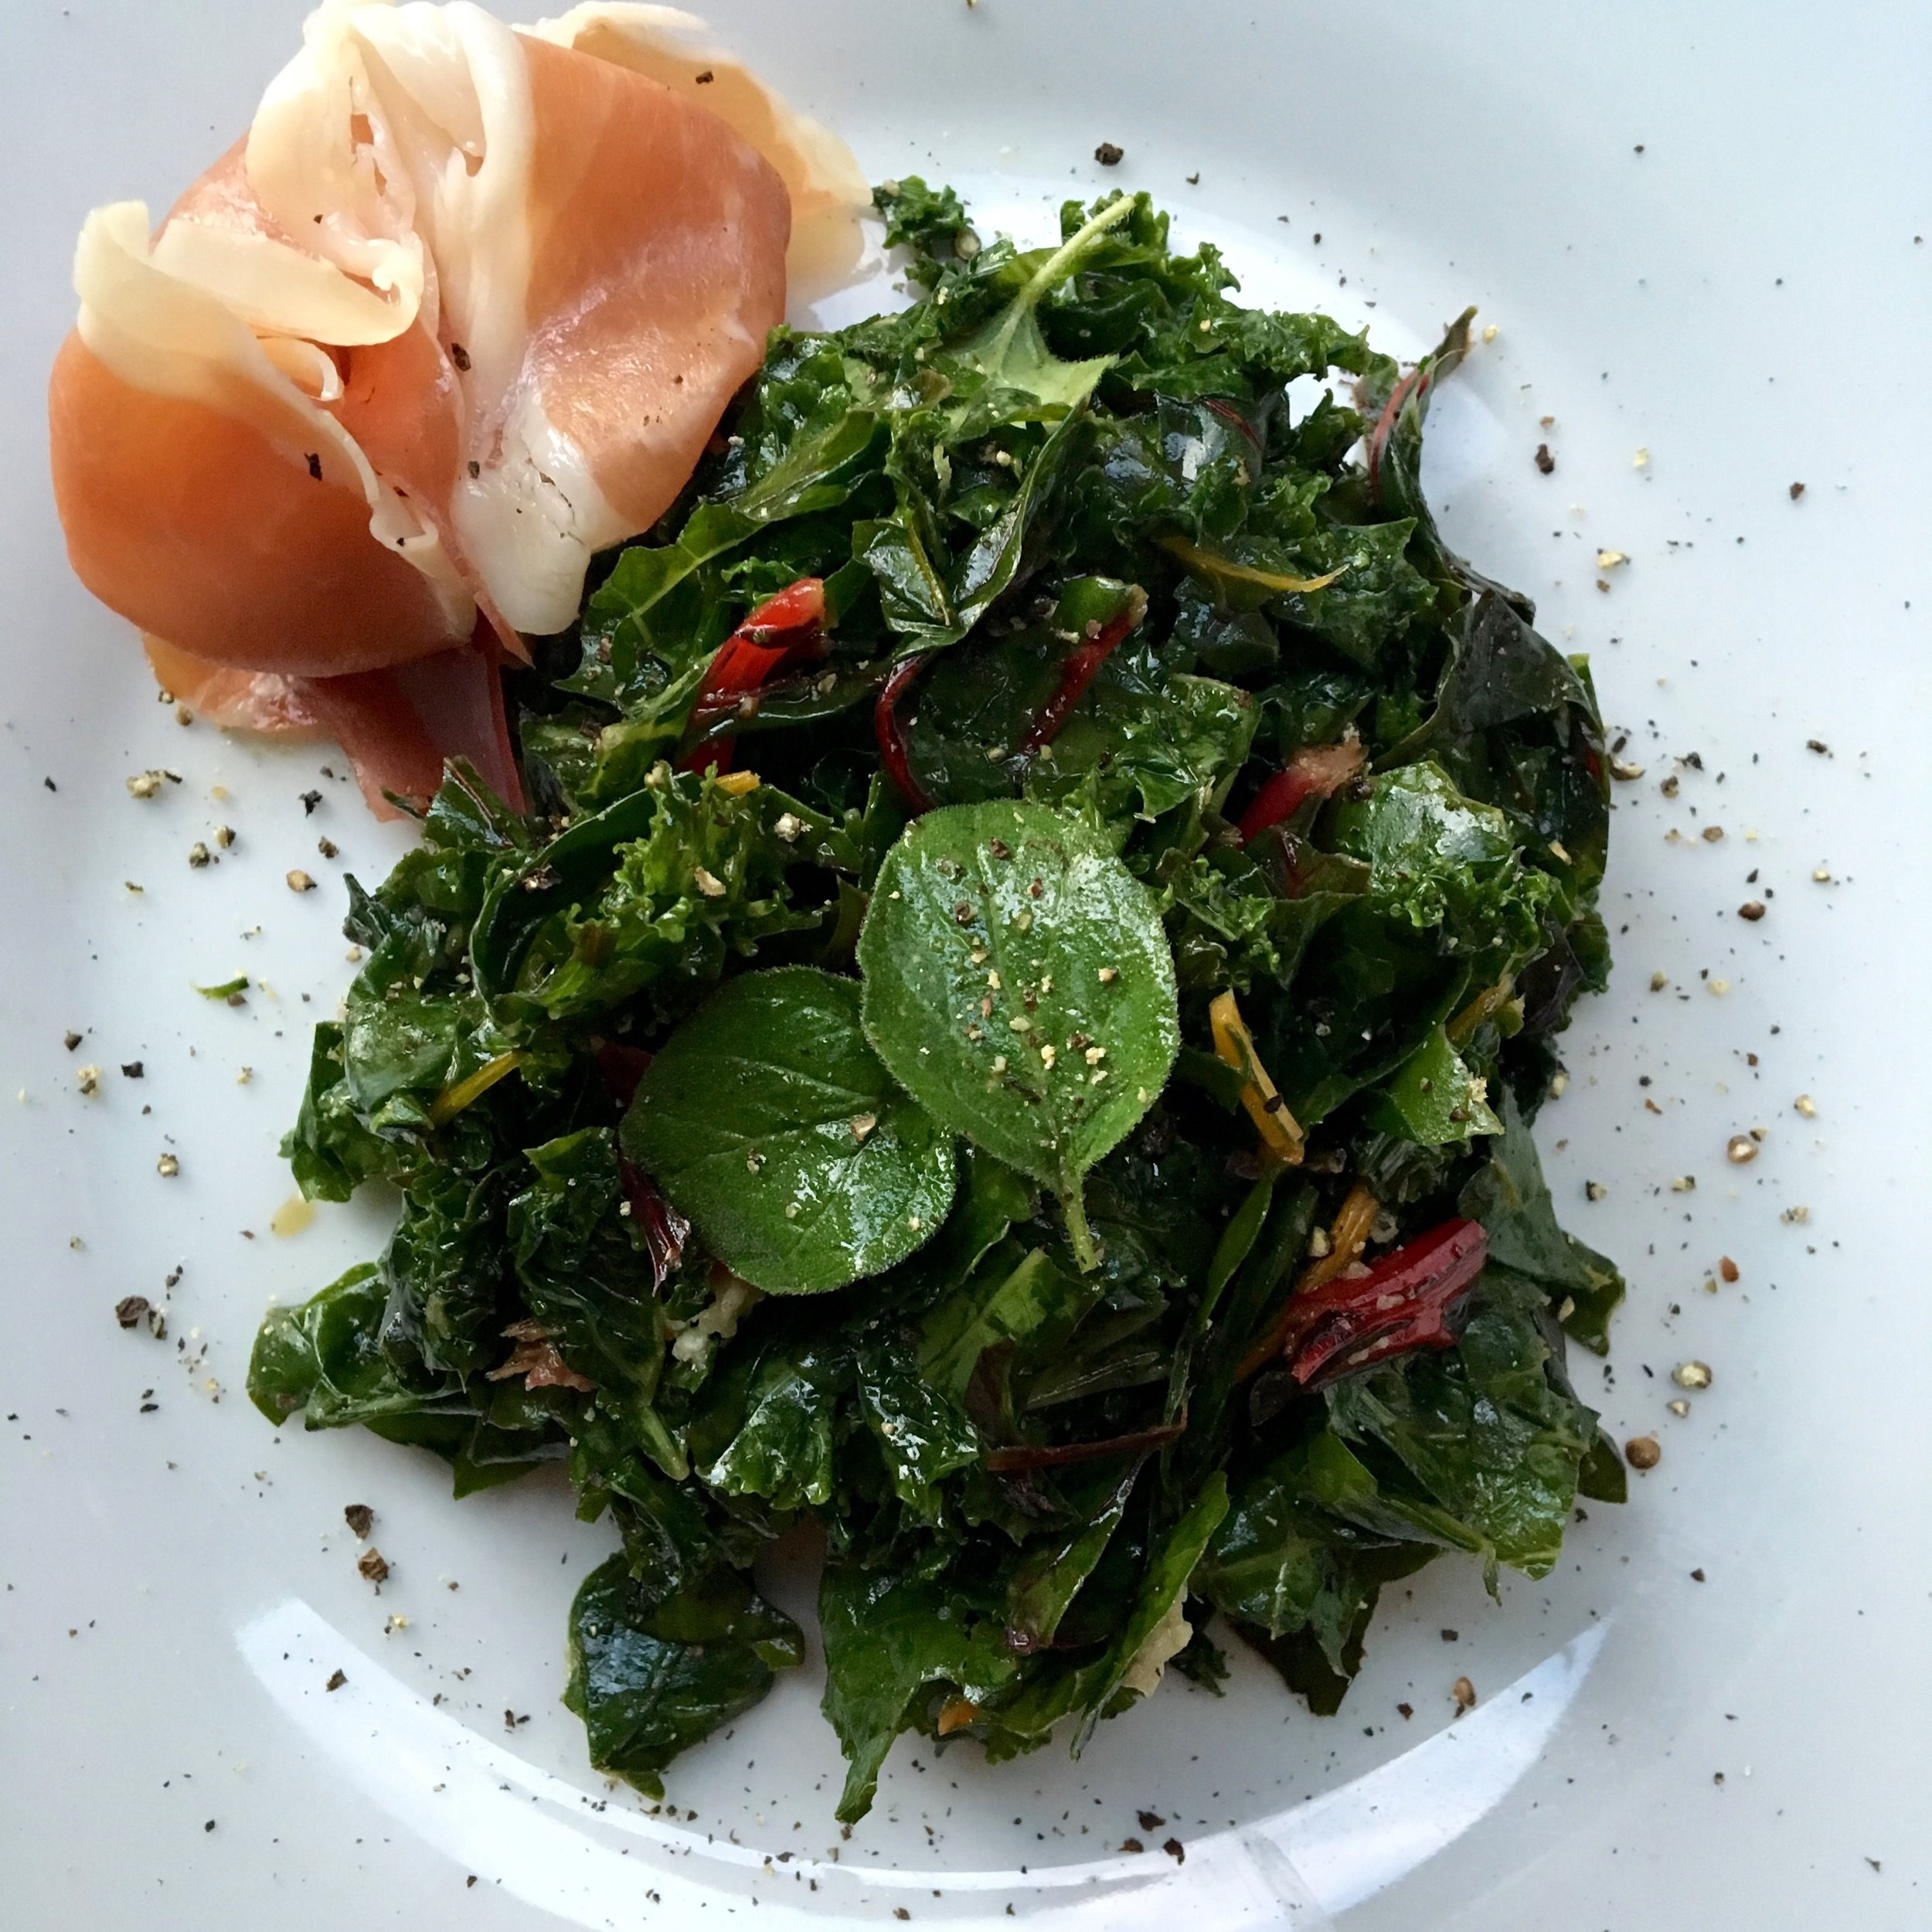 kale + chard salad with anchovy + oregano vinaigrette